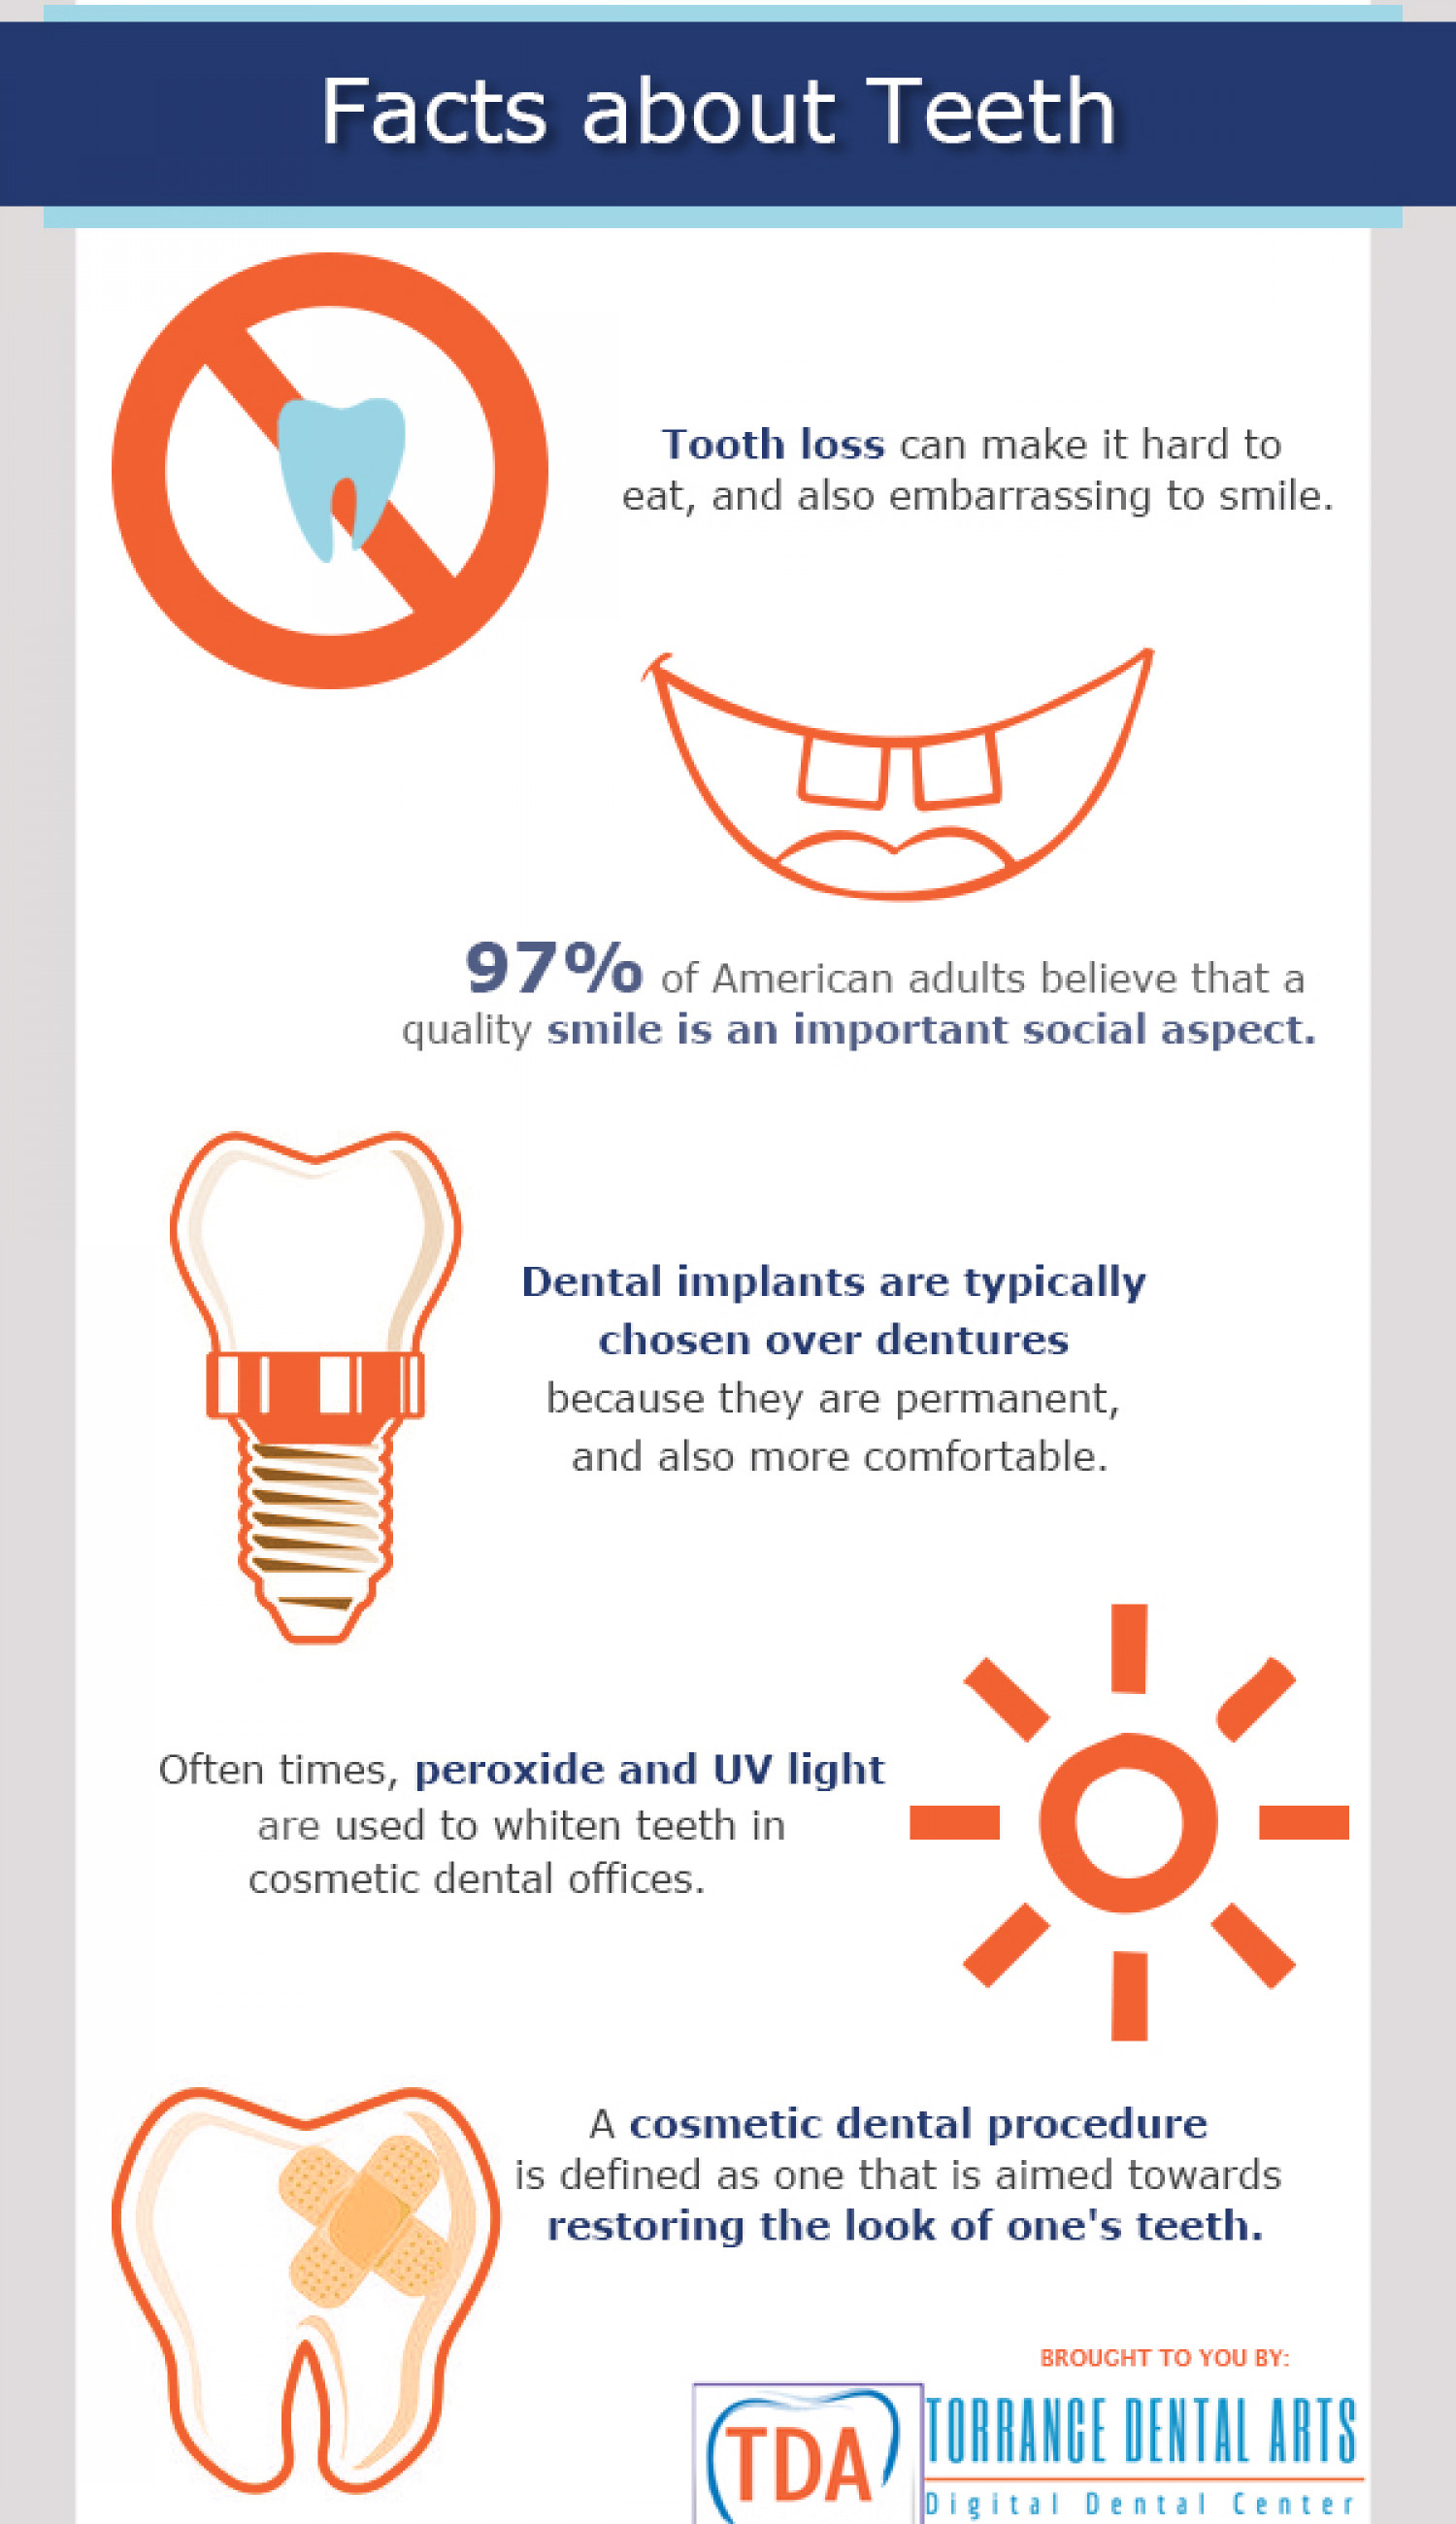 facts about teeth infographic